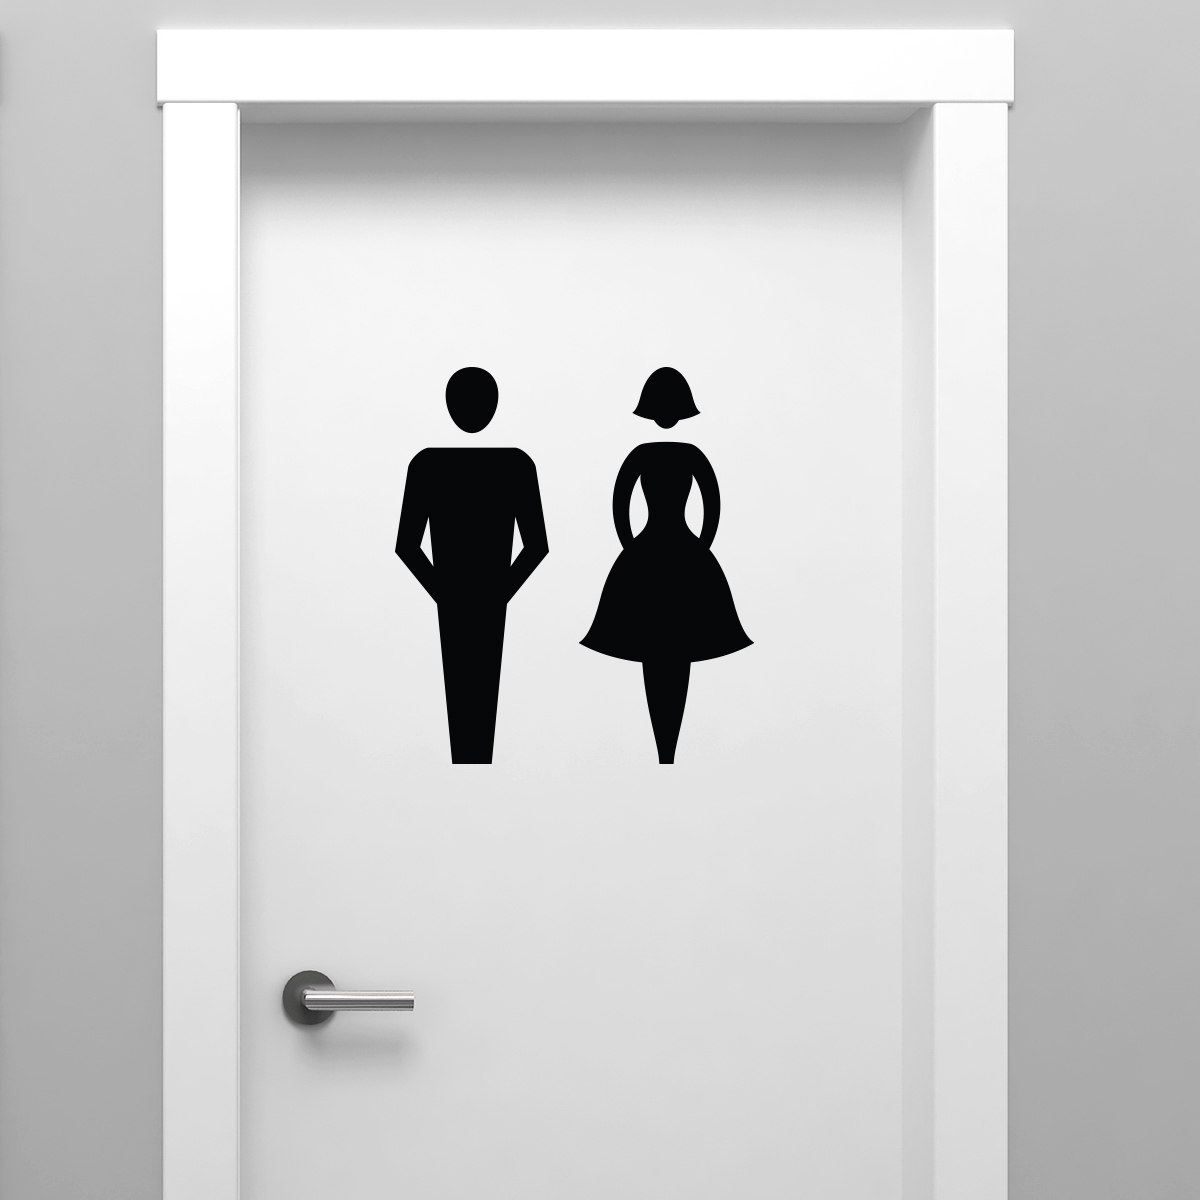 Sticker porte toilettes homme et dame chic stickers for Stickers pour porte toilettes